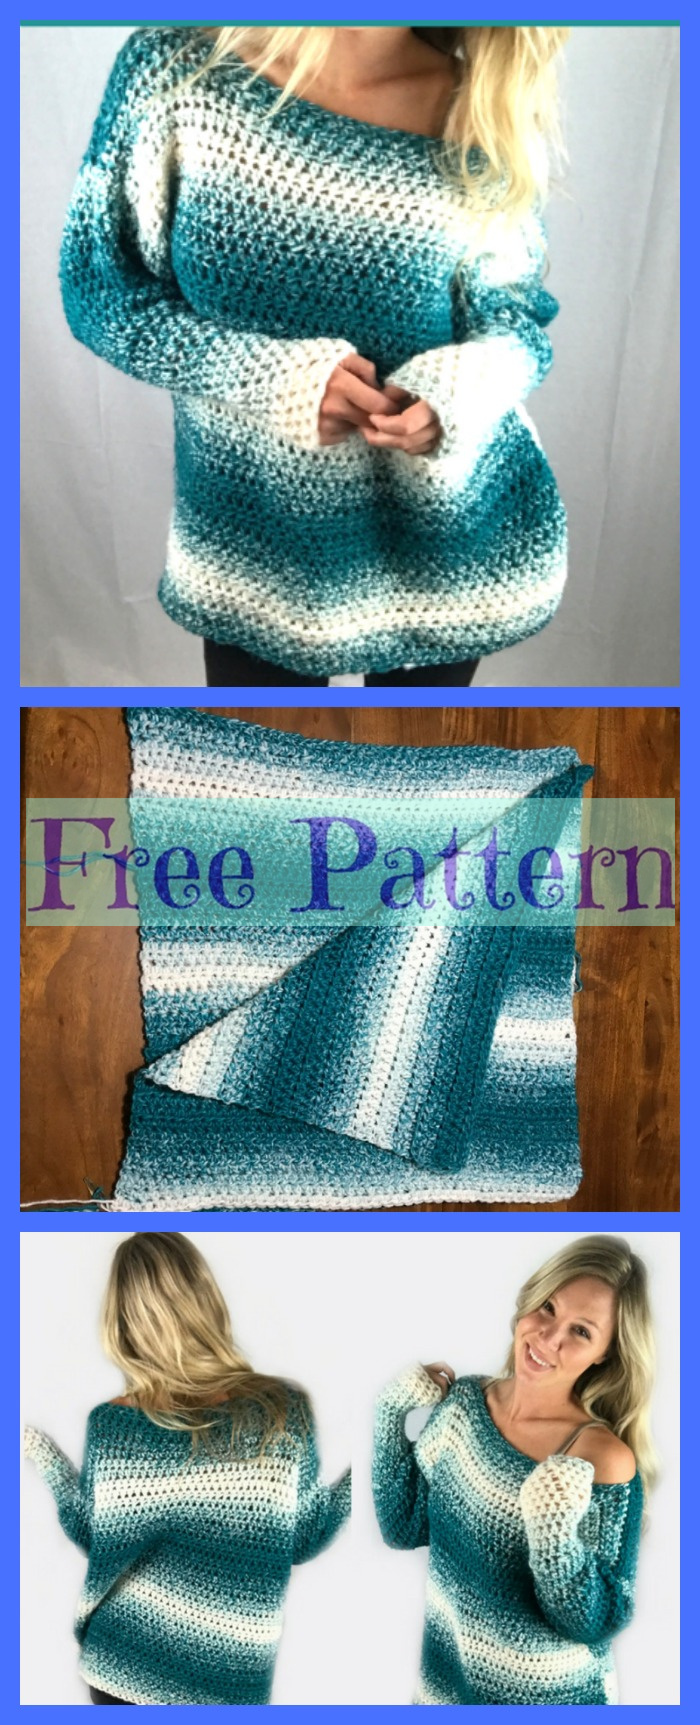 diy4ever-Pretty Crochet Sweaters - Free Patterns P3